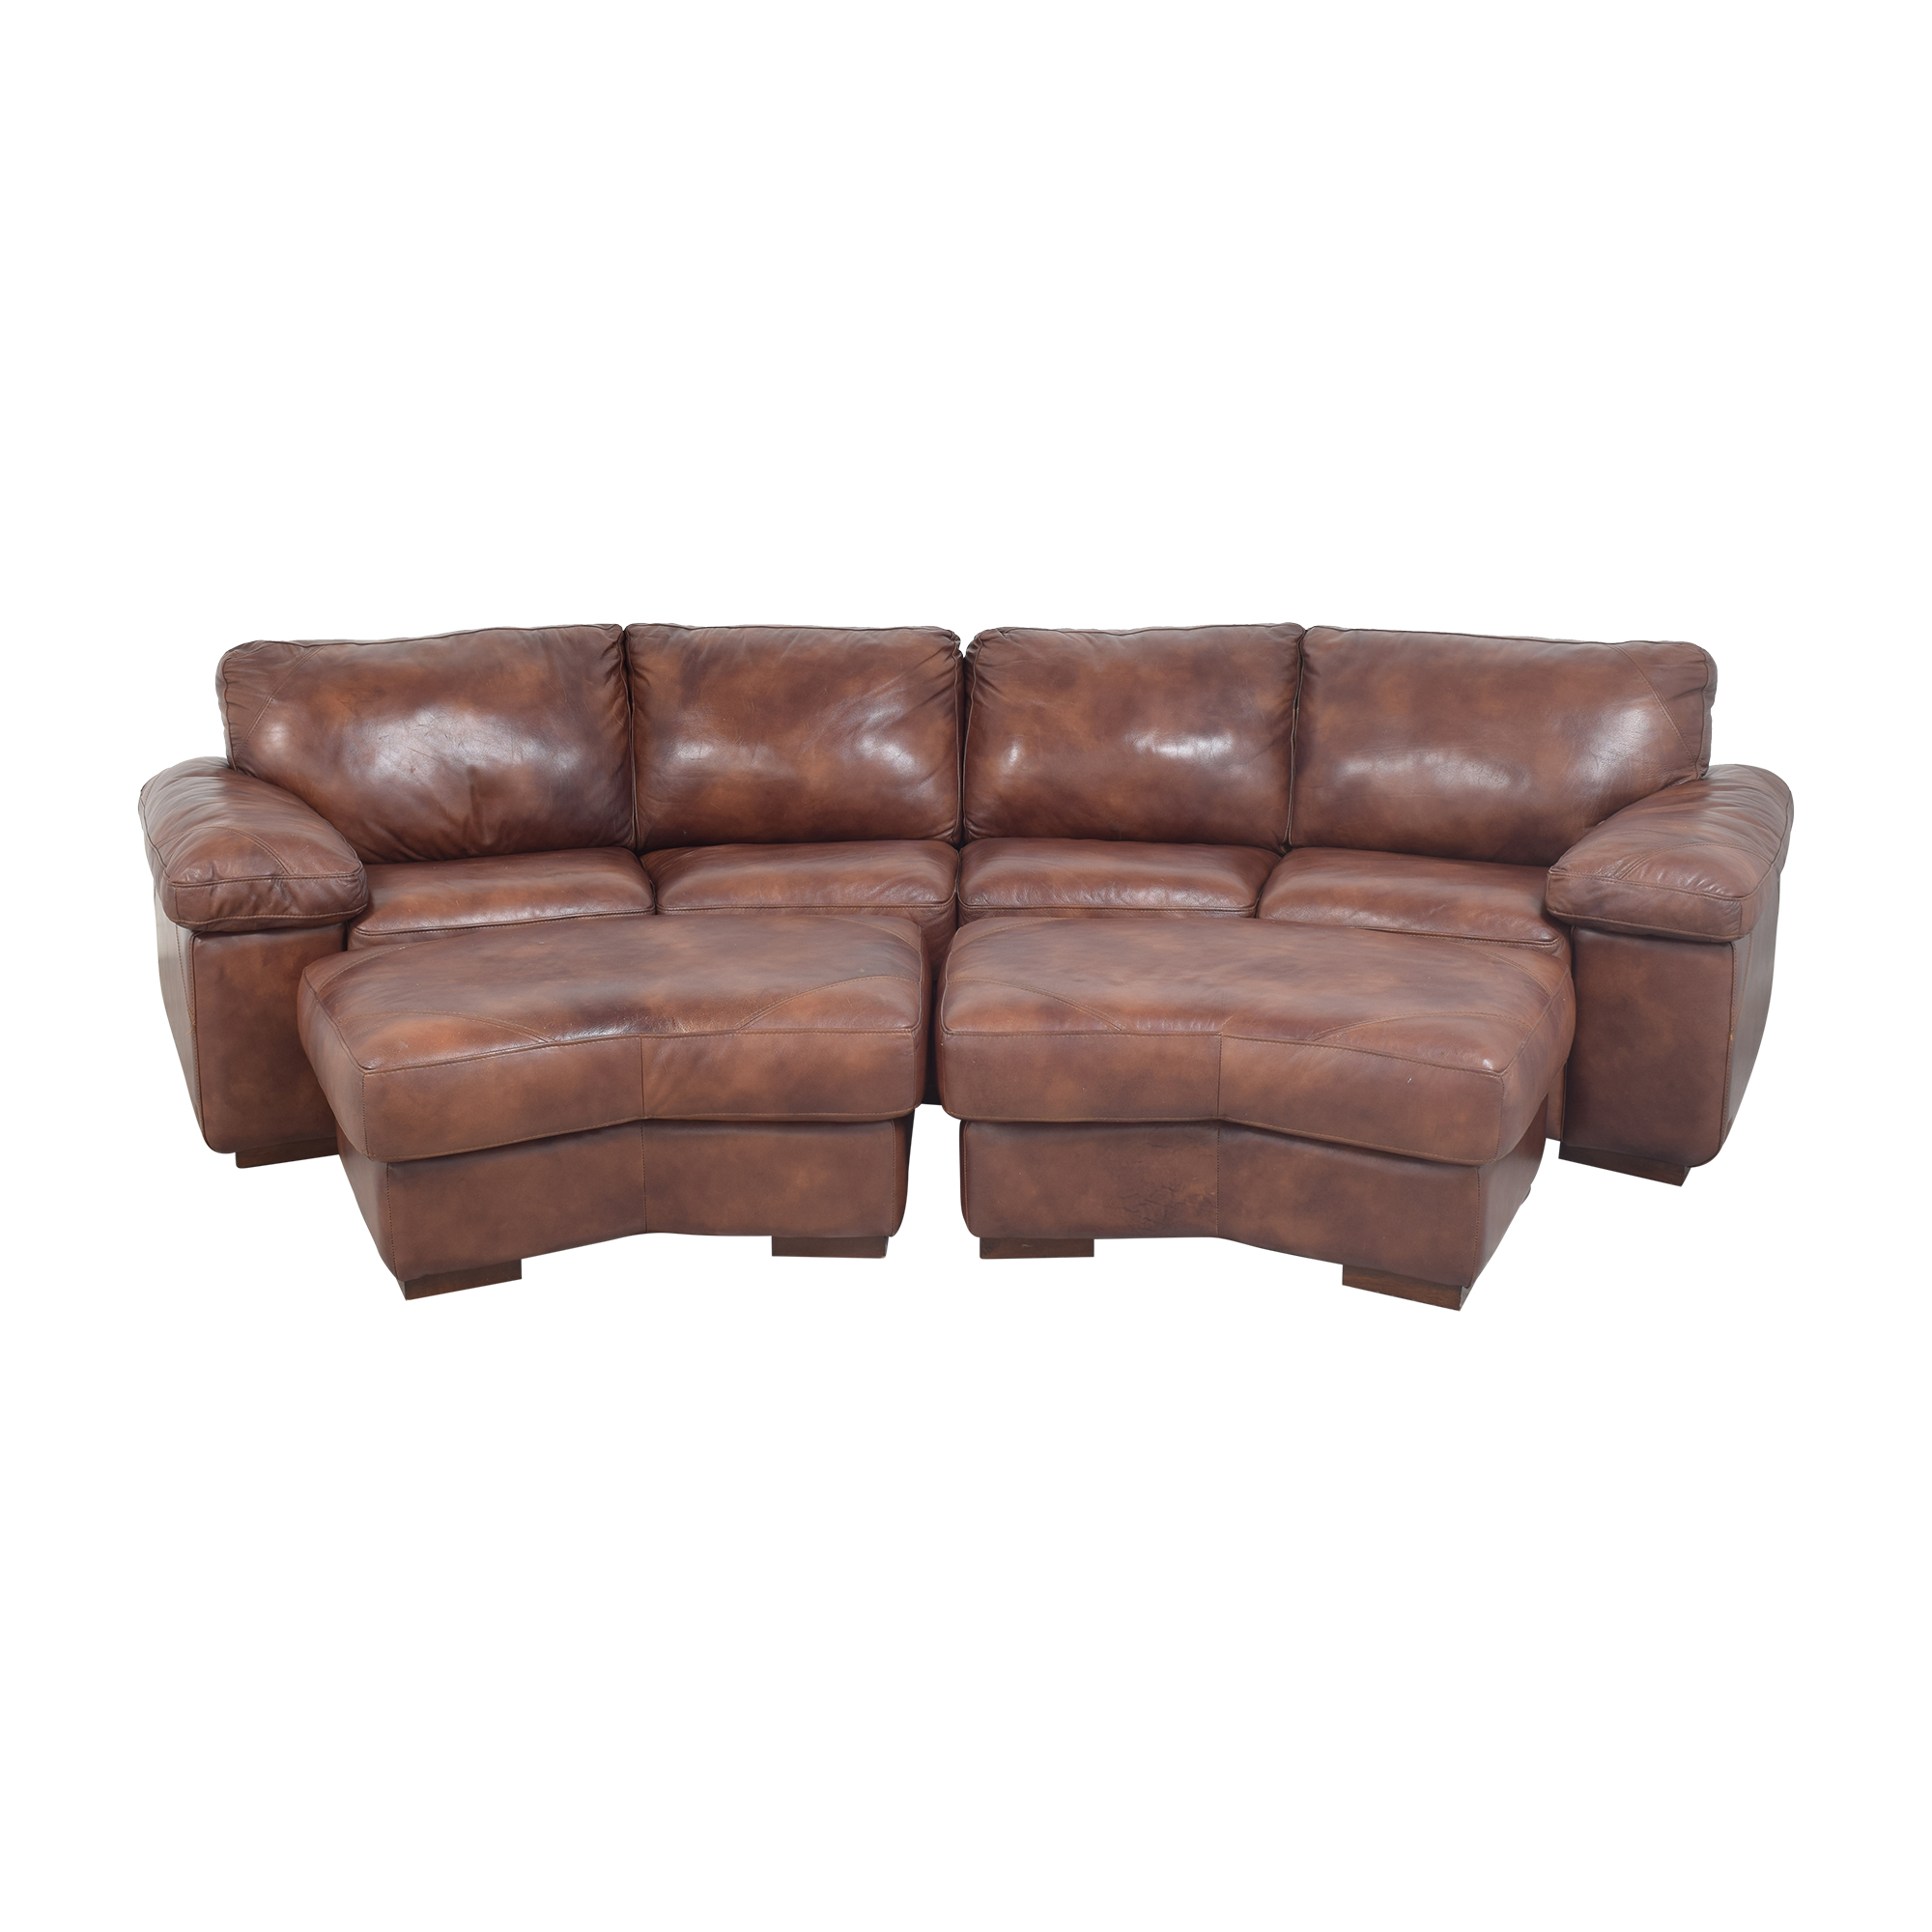 Bassett Two Piece Sectional Sofa with Ottomans Bassett Furniture